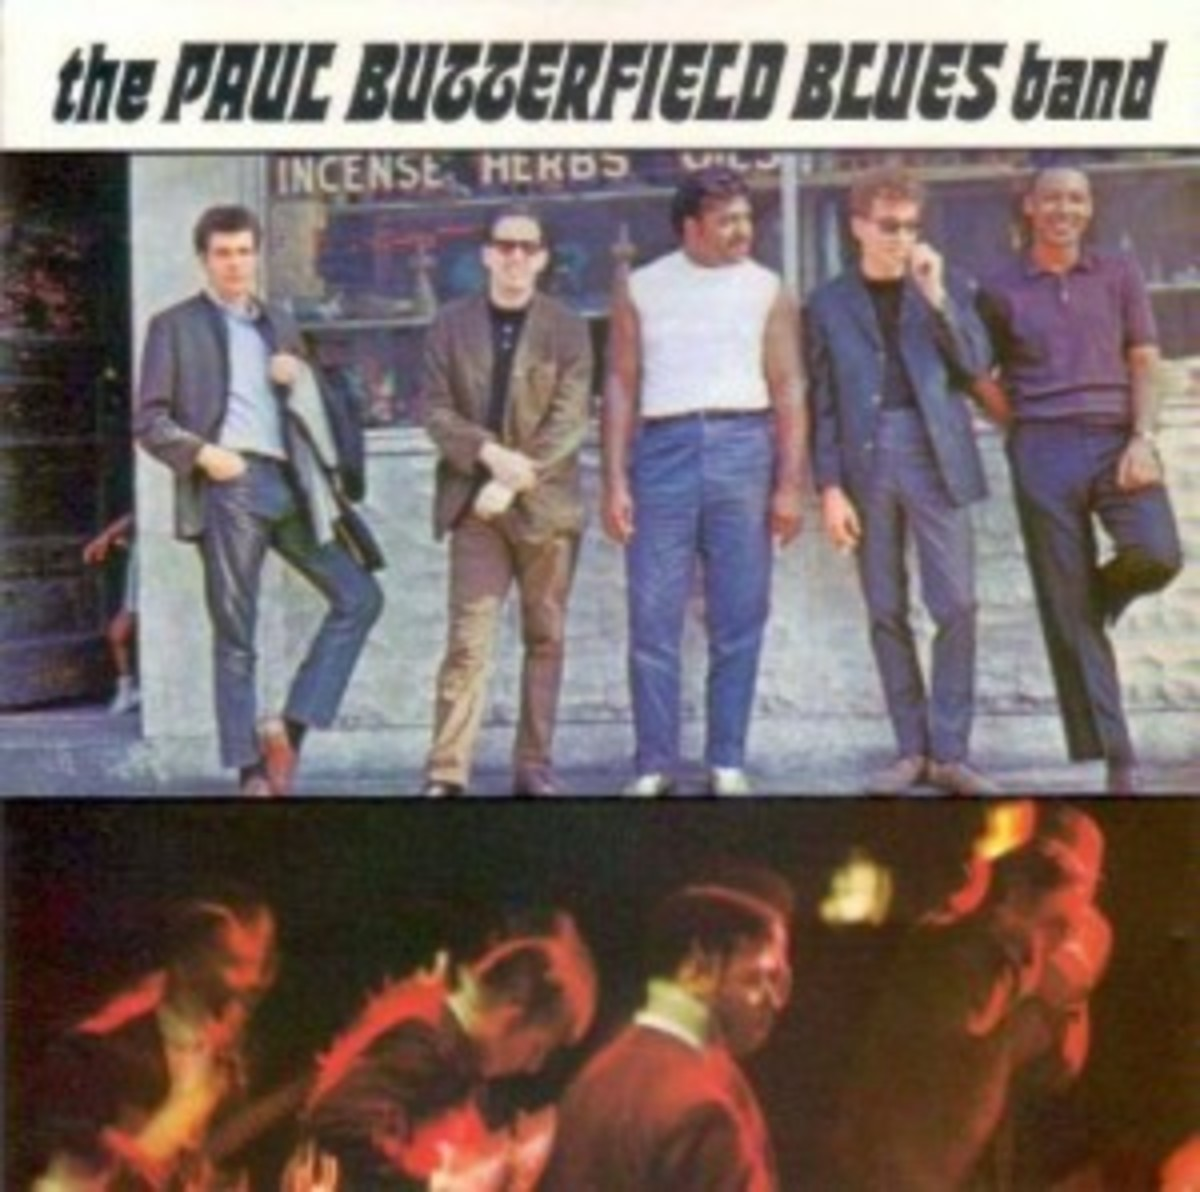 The_Paul_Butterfield_Blues_Band_-_The_Paul_Butterfield_Blues_Band